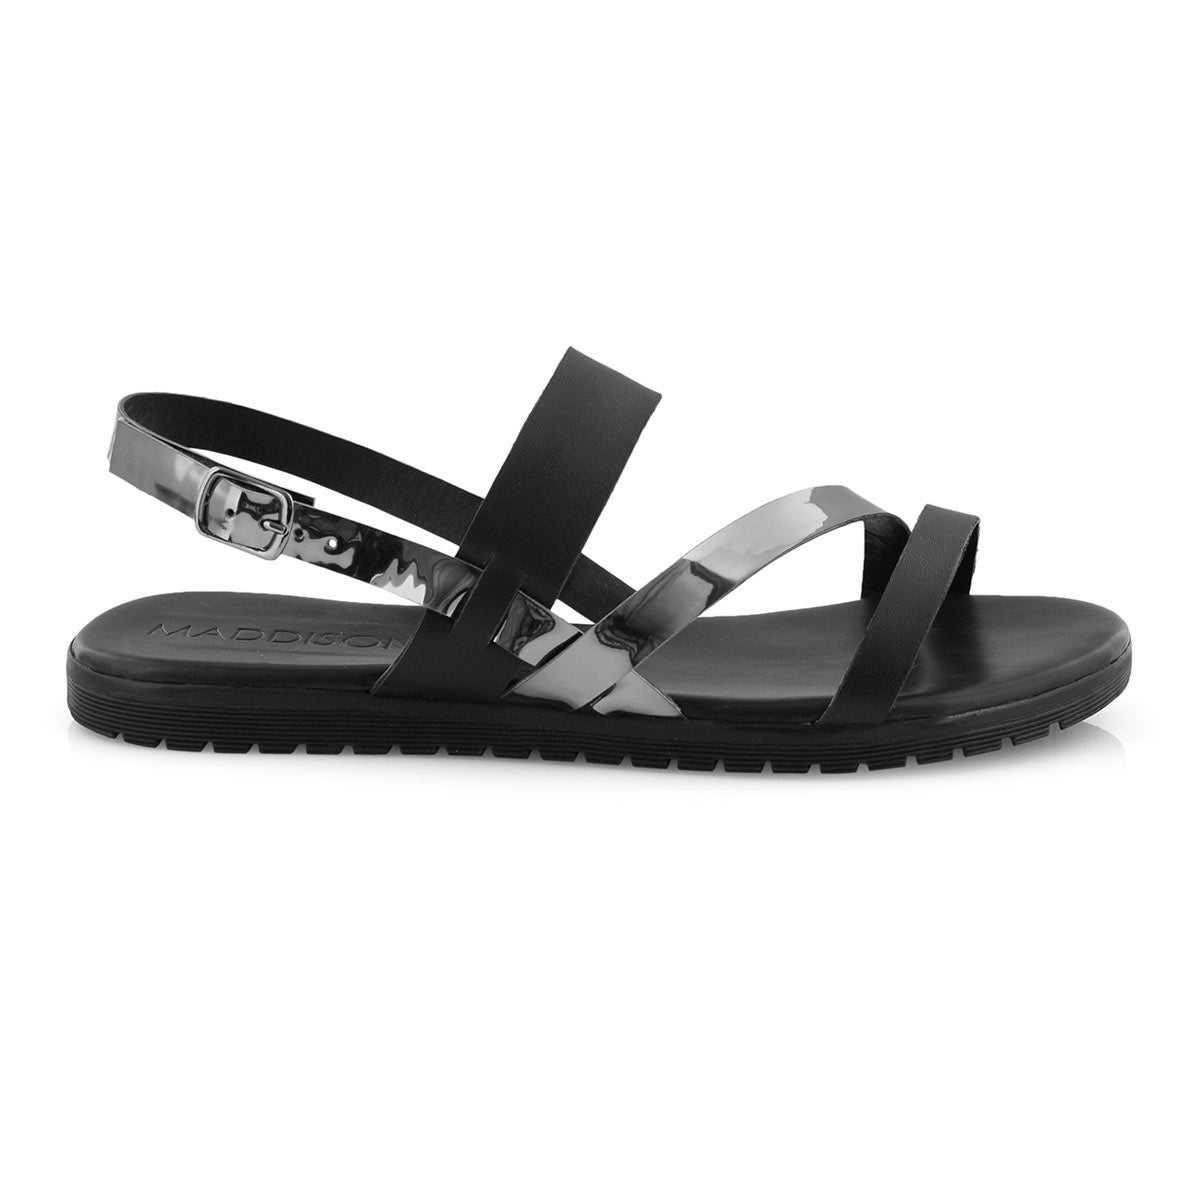 Lds Gita black/pewter casual sandal